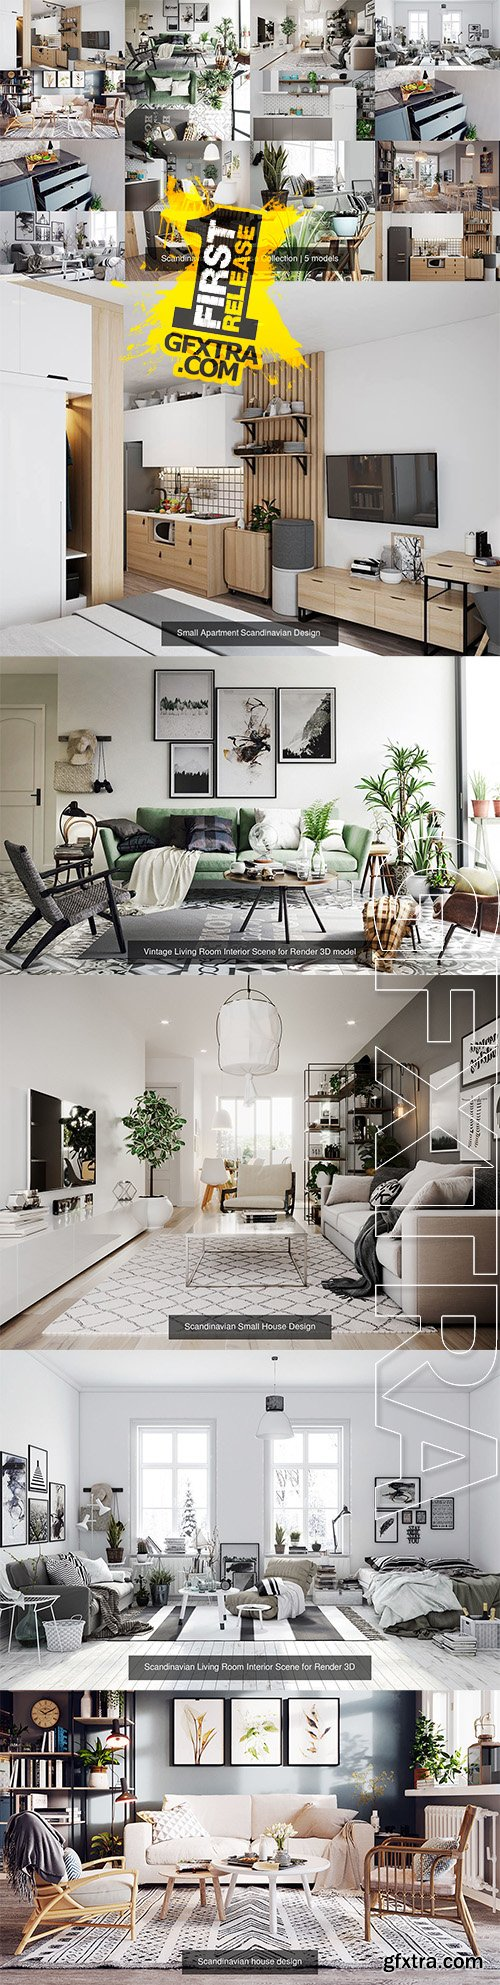 Cgtrader - Scandinavian Style House Collection